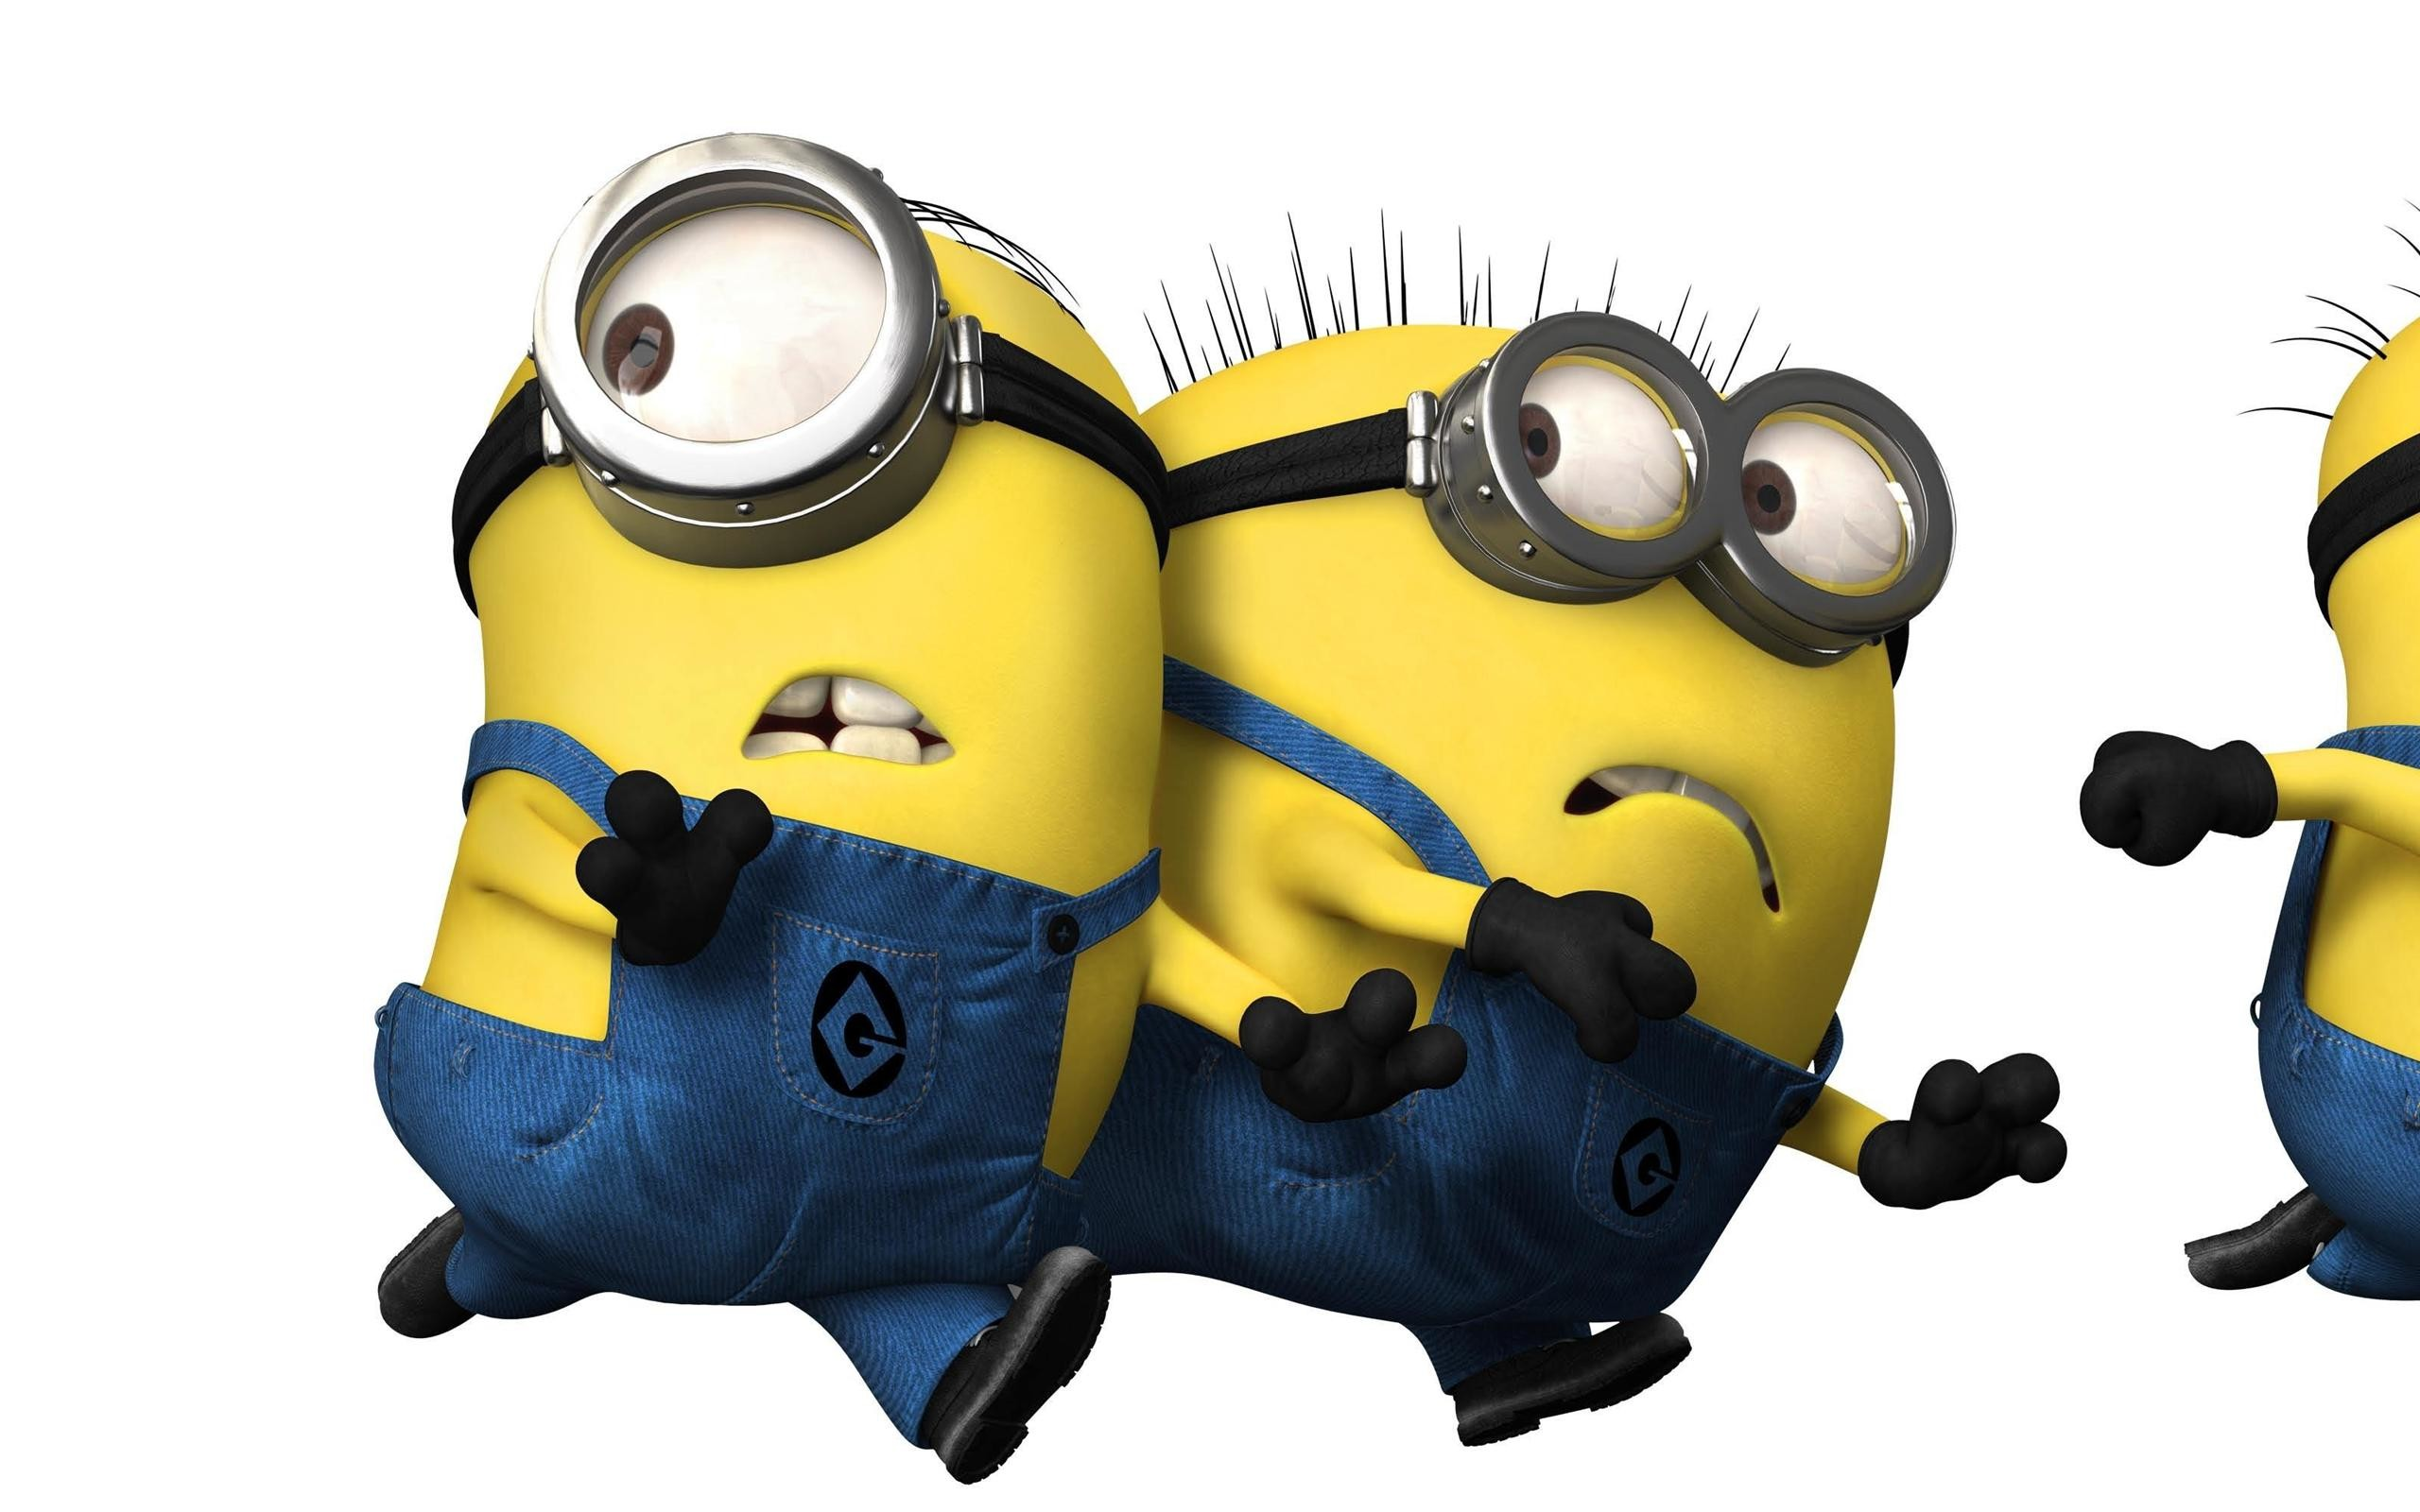 2560x1600 Cute Minion Wallpapers HD for Desktop (36)